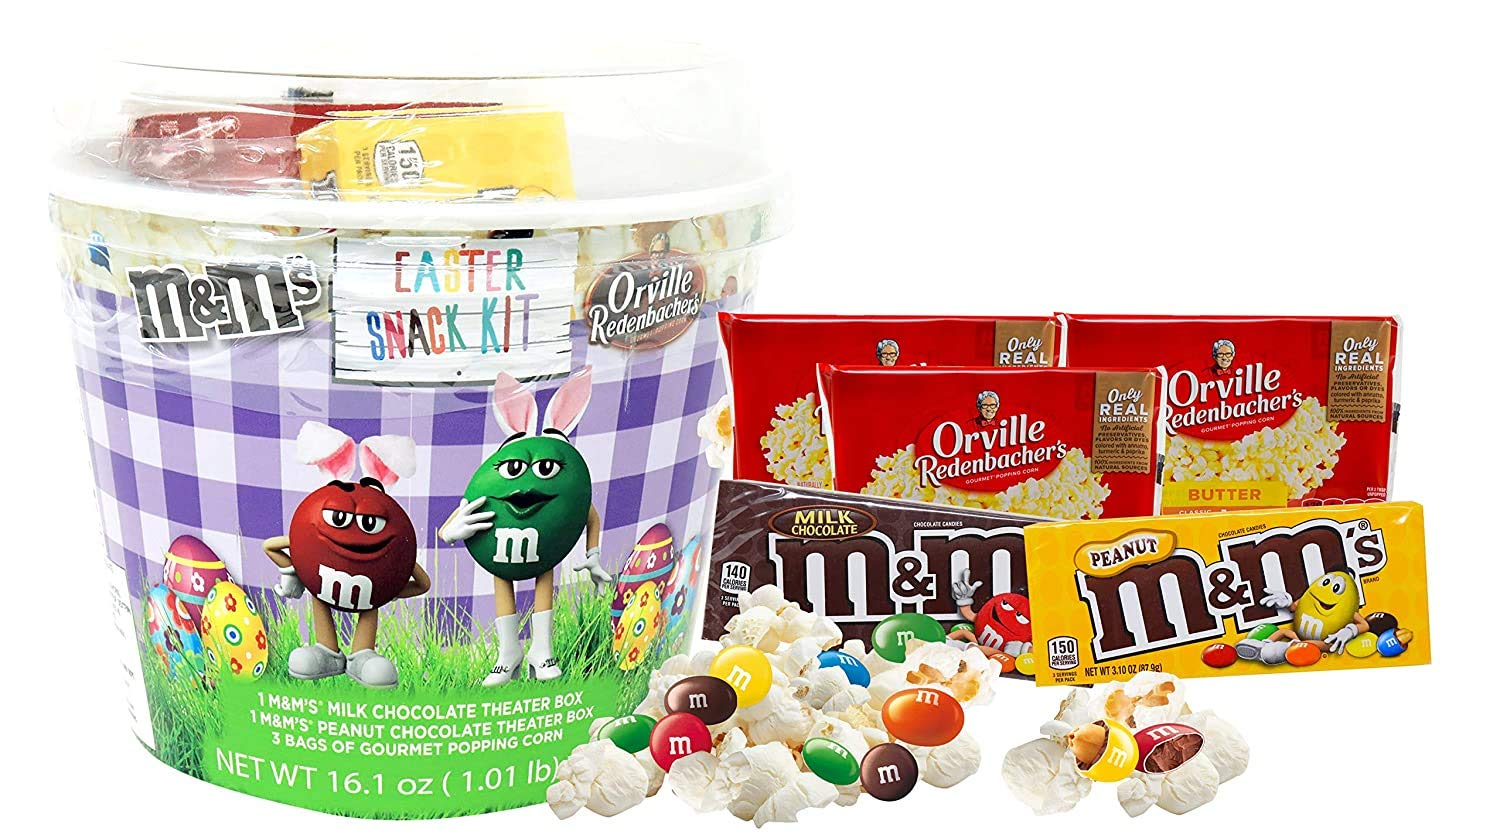 CandyRific New product type Easter Bucket Snack In stock for The Family 3 Mi Bags Classic